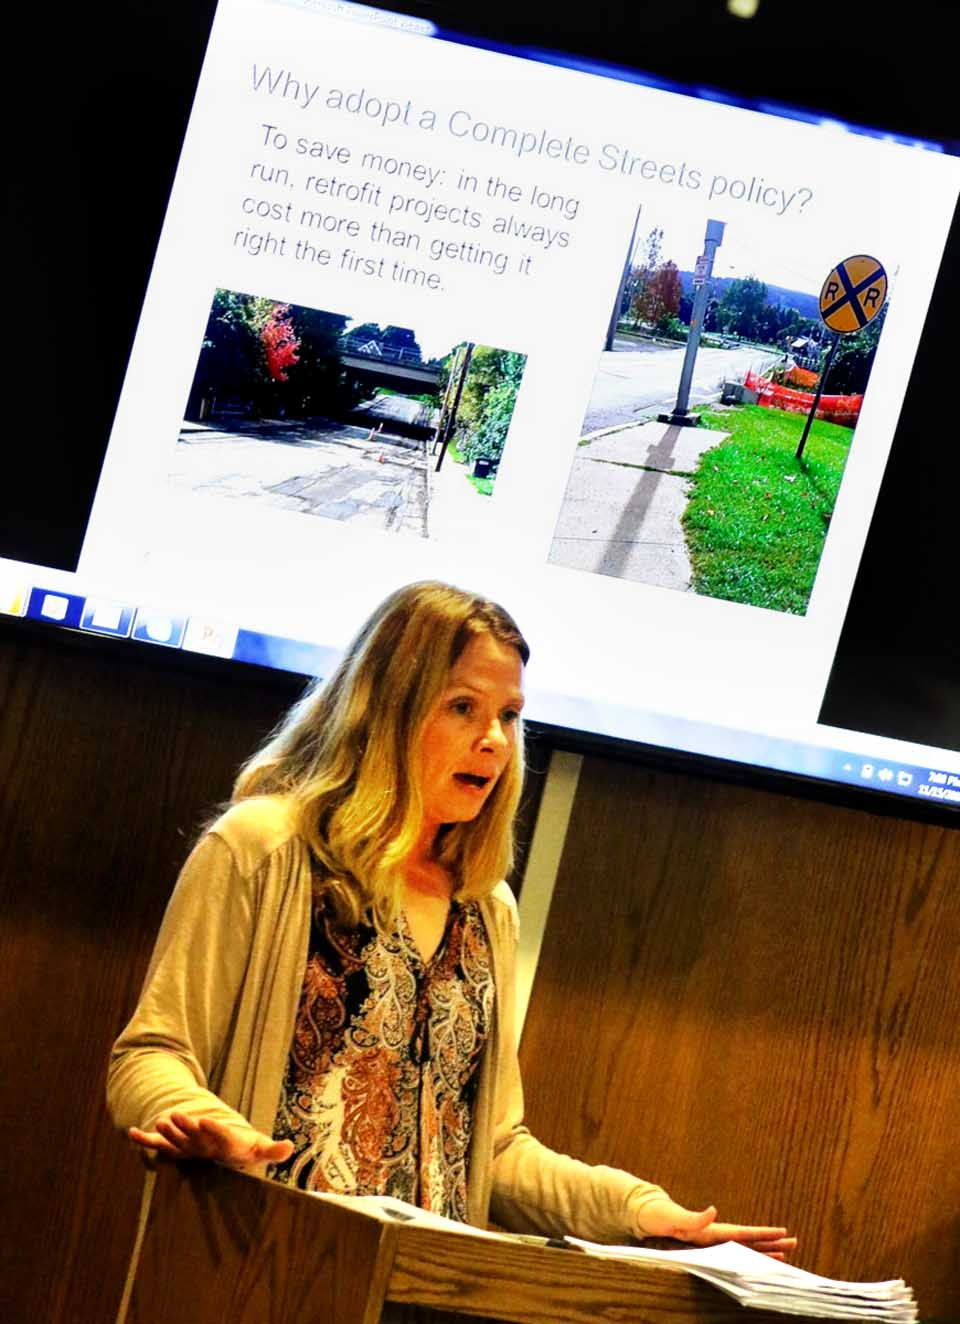 Lynae Wyckoff, a local coordinator for the Complete Streets initiative, shares her findings with Oneonta Common Council during tonight's meeting. (Ian Austin/AllOTSEGO.com)